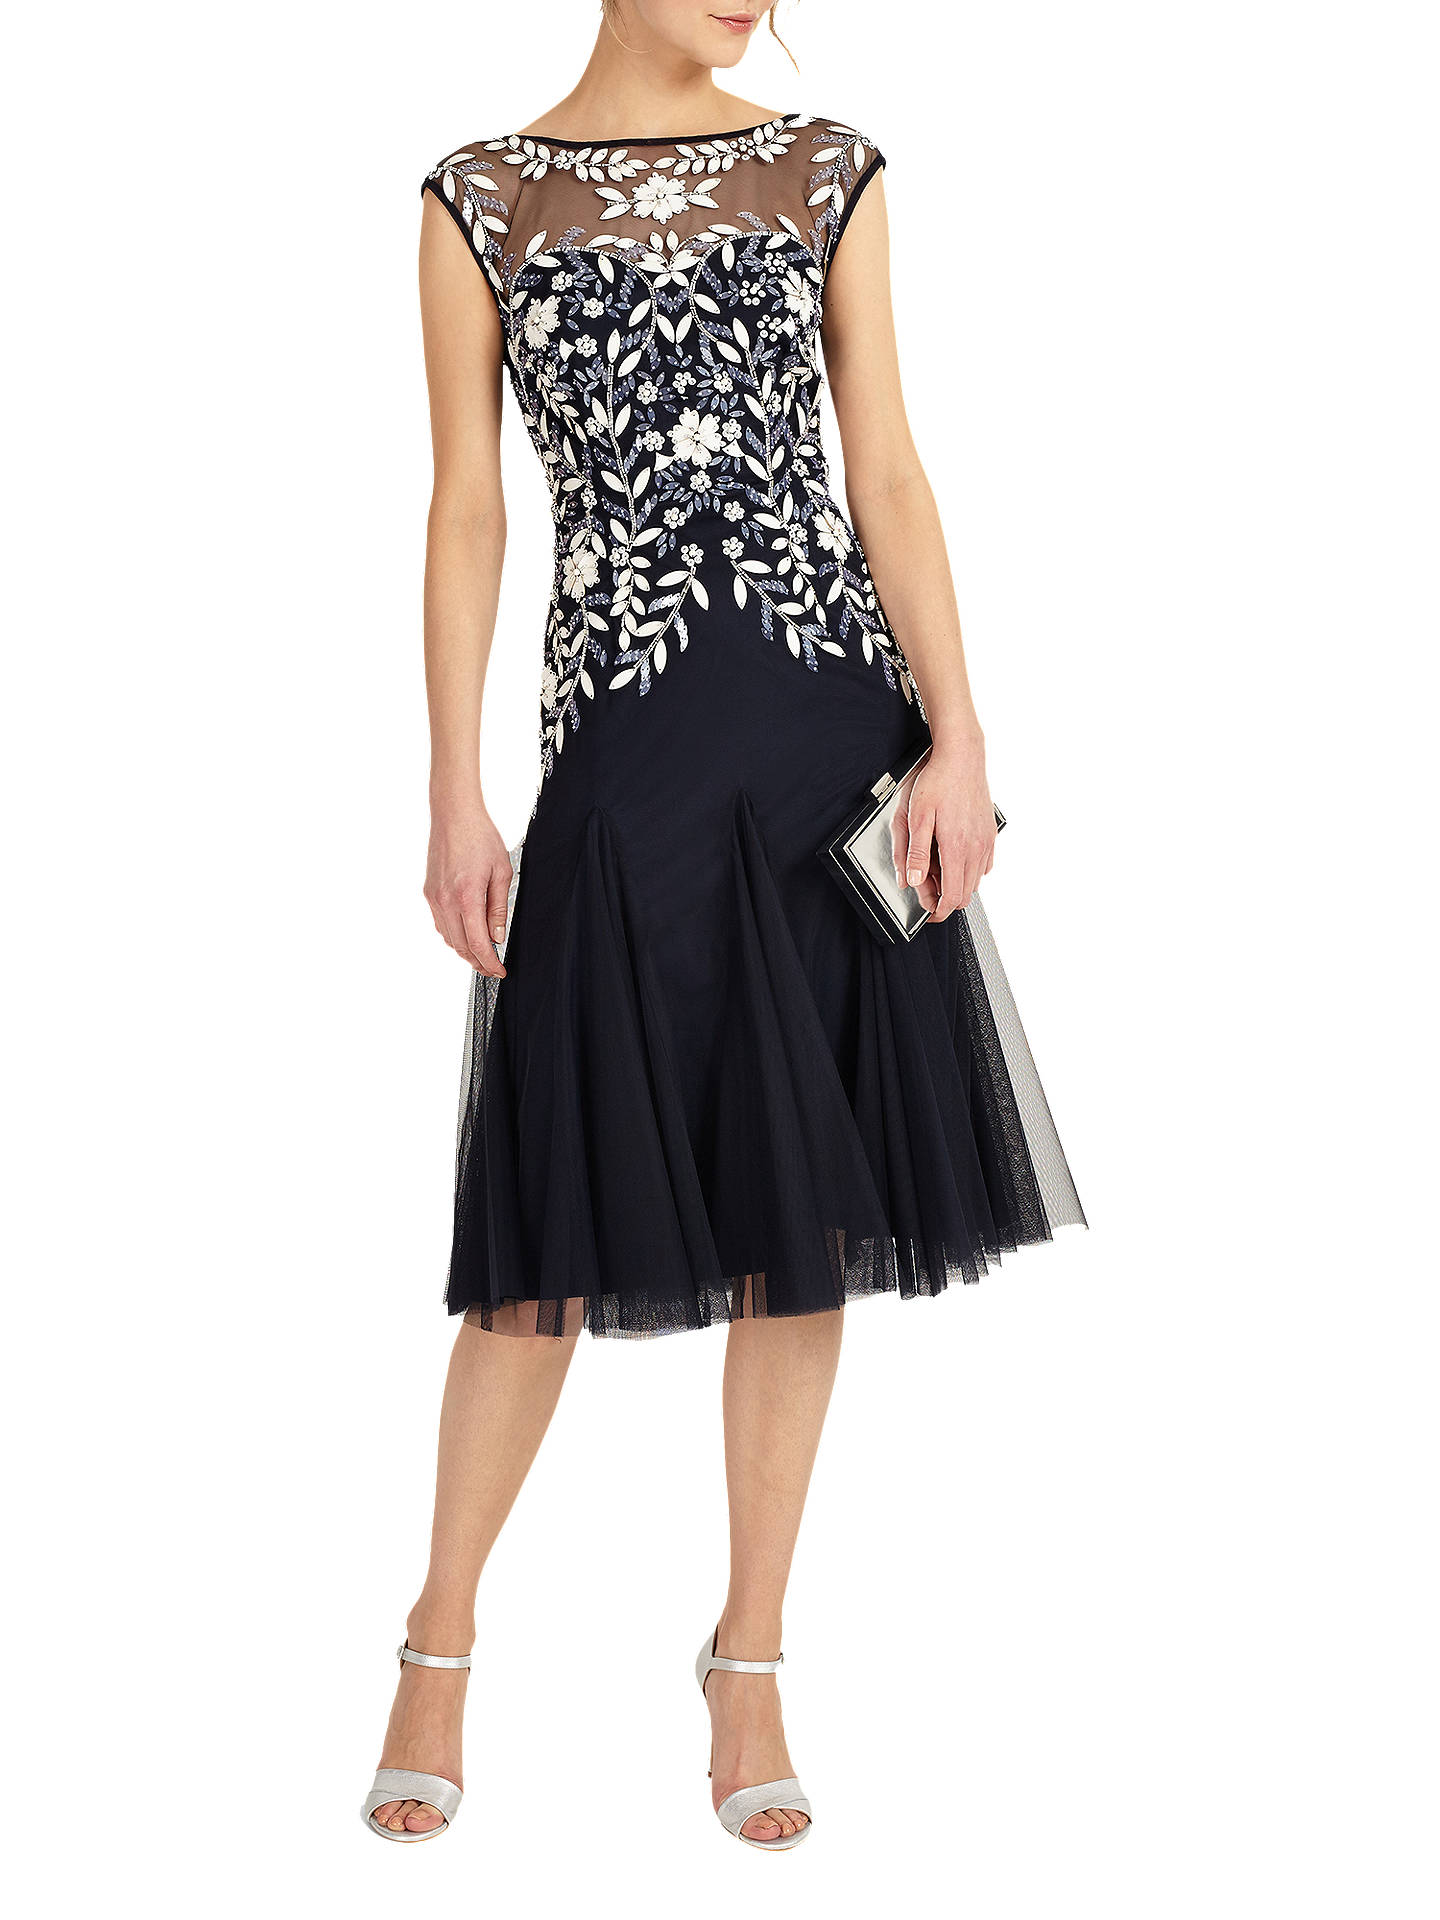 BuyPhase Eight Ursula Tulle Dress, Navy, 12 Online at johnlewis.com